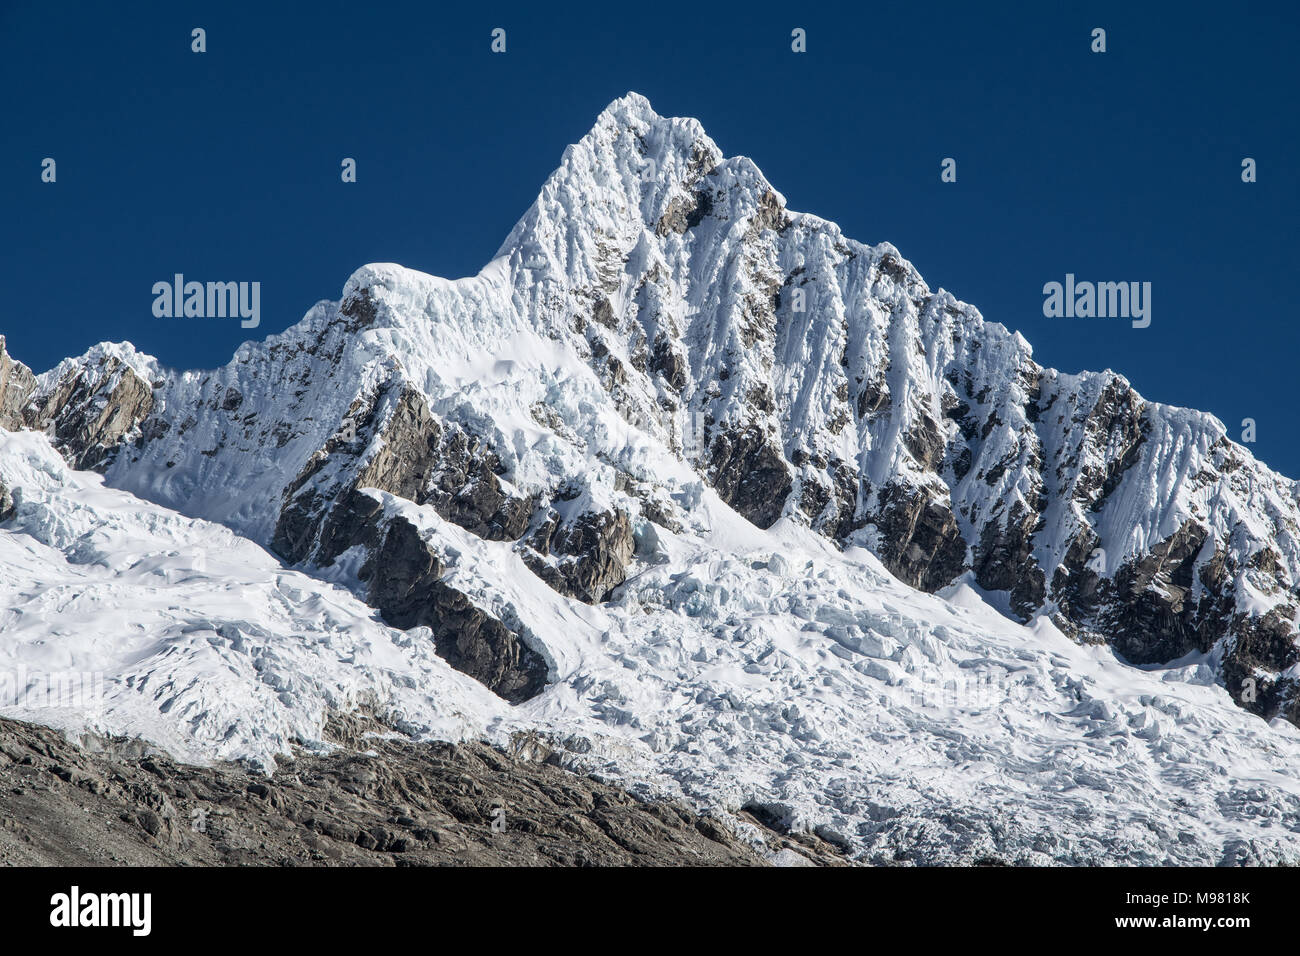 Khumbu glacier with Nuptse and Mount Everest seen from Kala Pattar - Stock Image